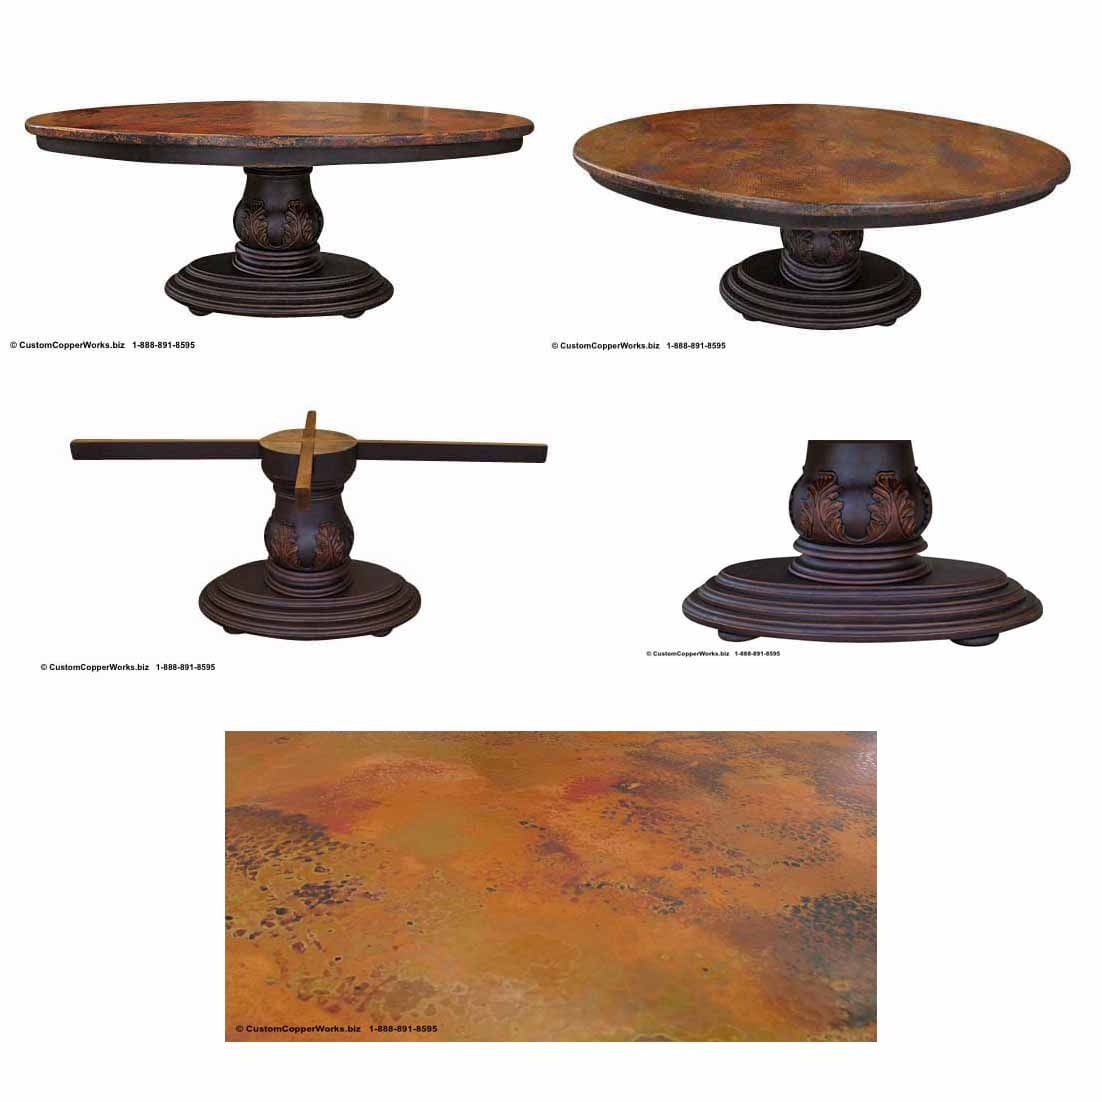 Copper Table Top Oval Dining Table Mounted On The Christina Wood